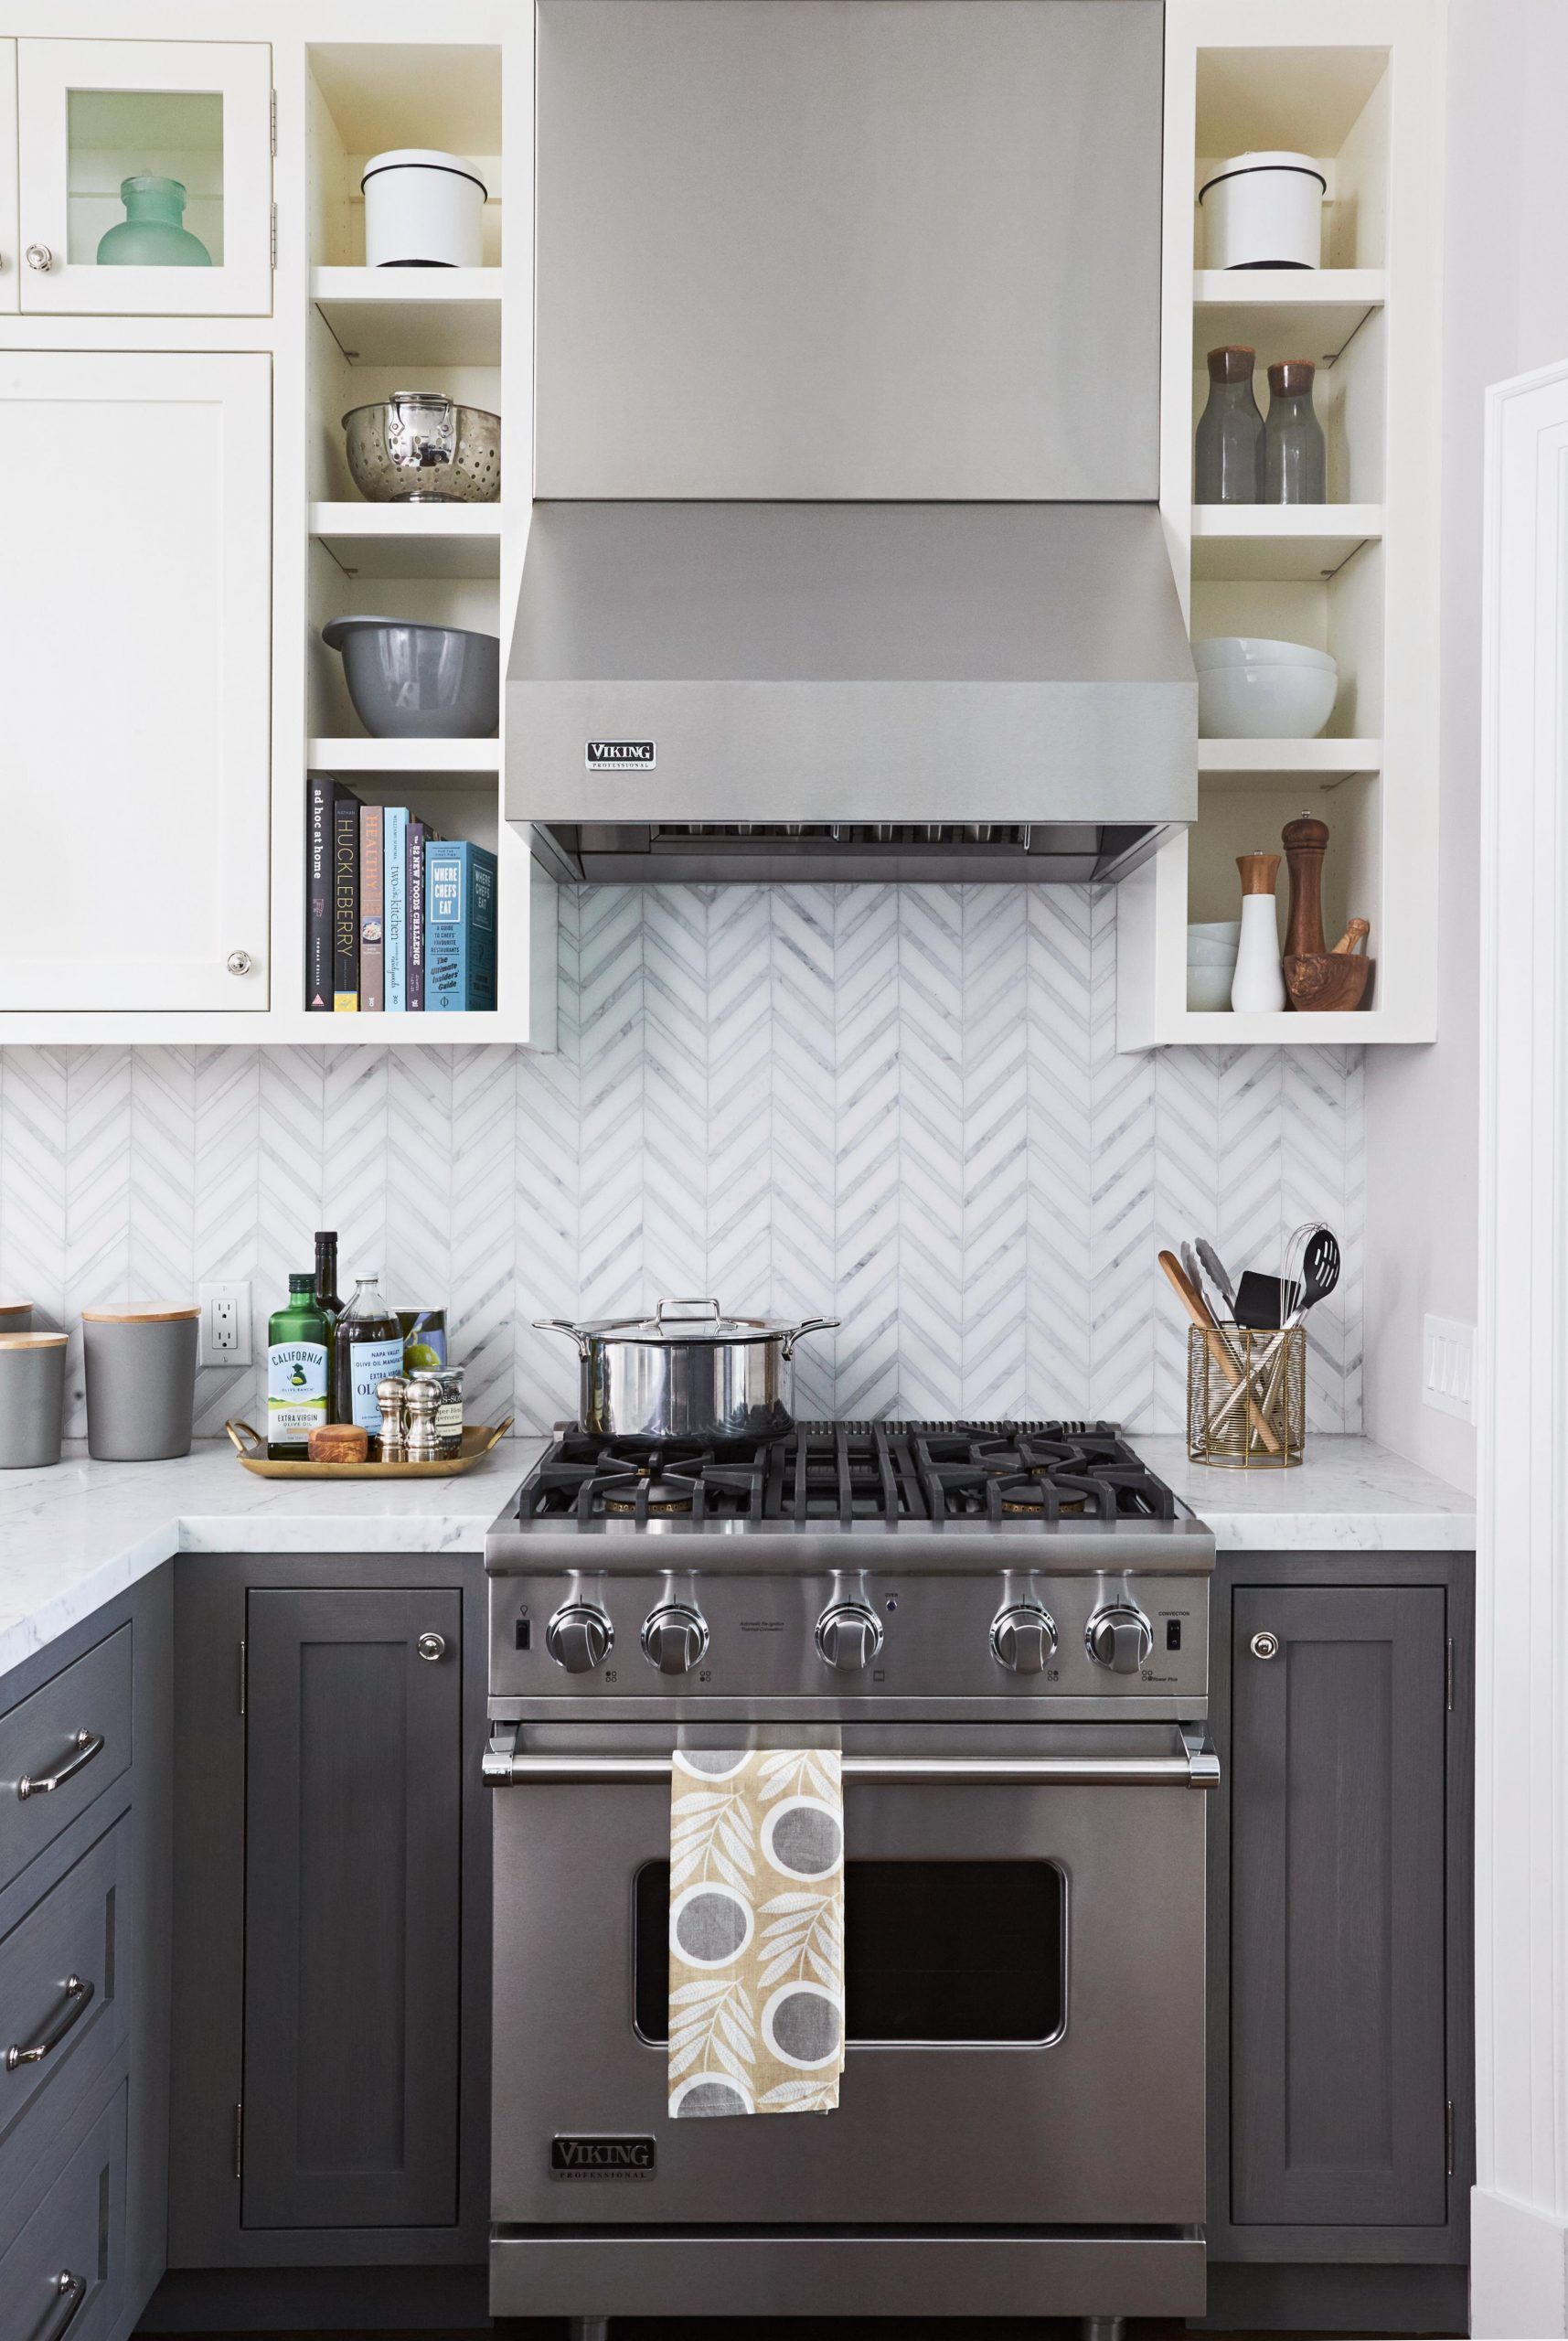 17 Kitchen Floor Tile Ideas White Cabinets In 2020 New Kitchen Cabinets Kitchen Remodel Kitchen Tiles Design